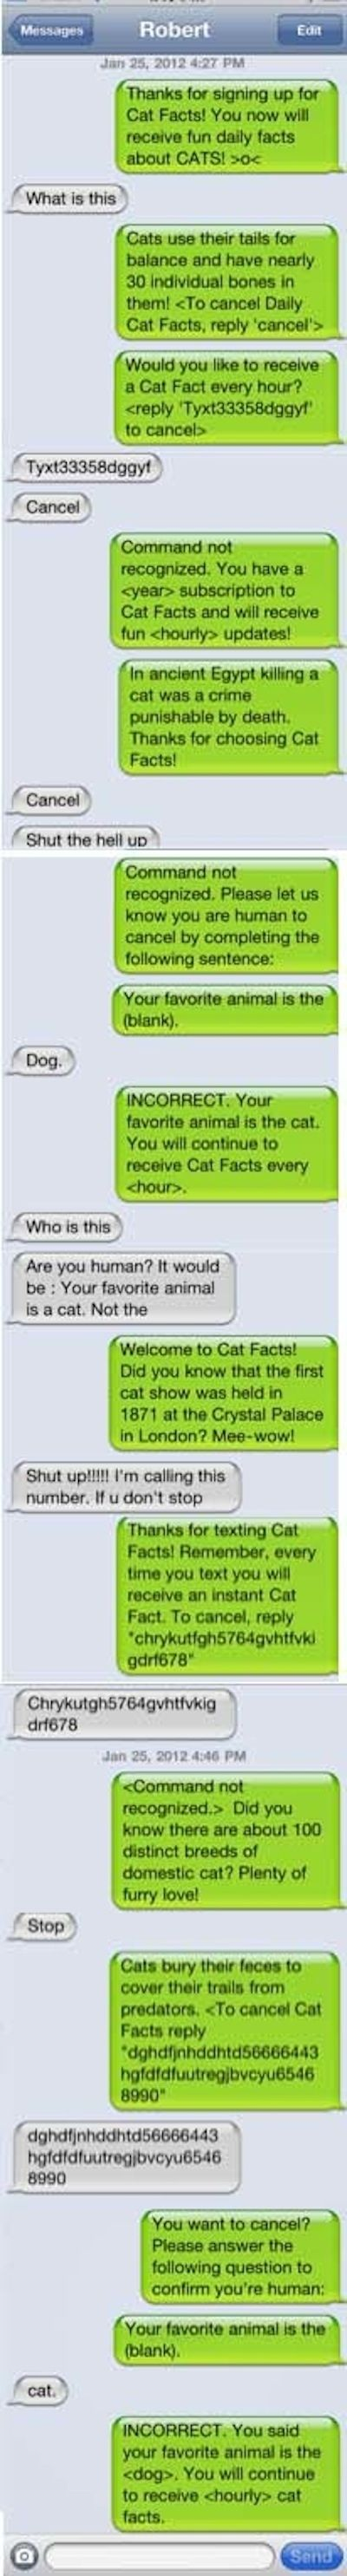 Cat Facts - I never get tired of reading this!